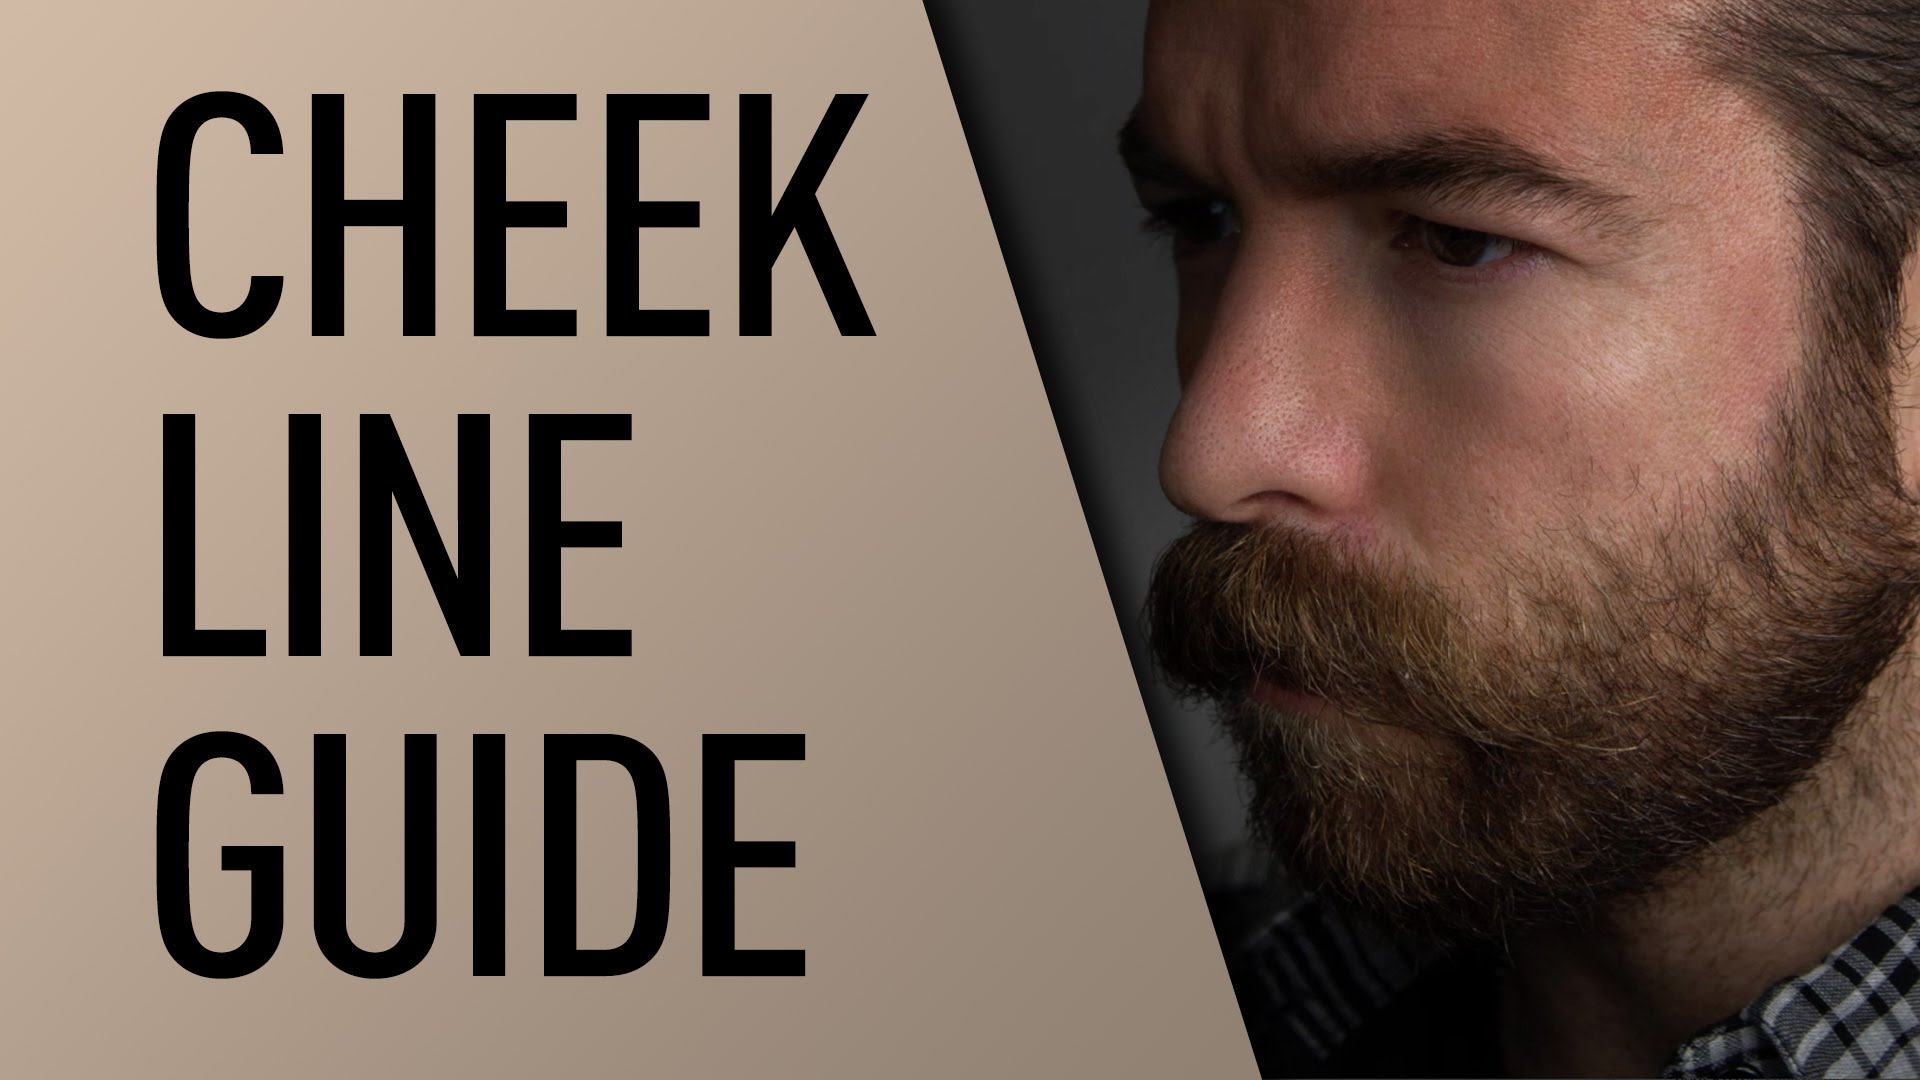 How to find your beard's neckline and trim it professionally.